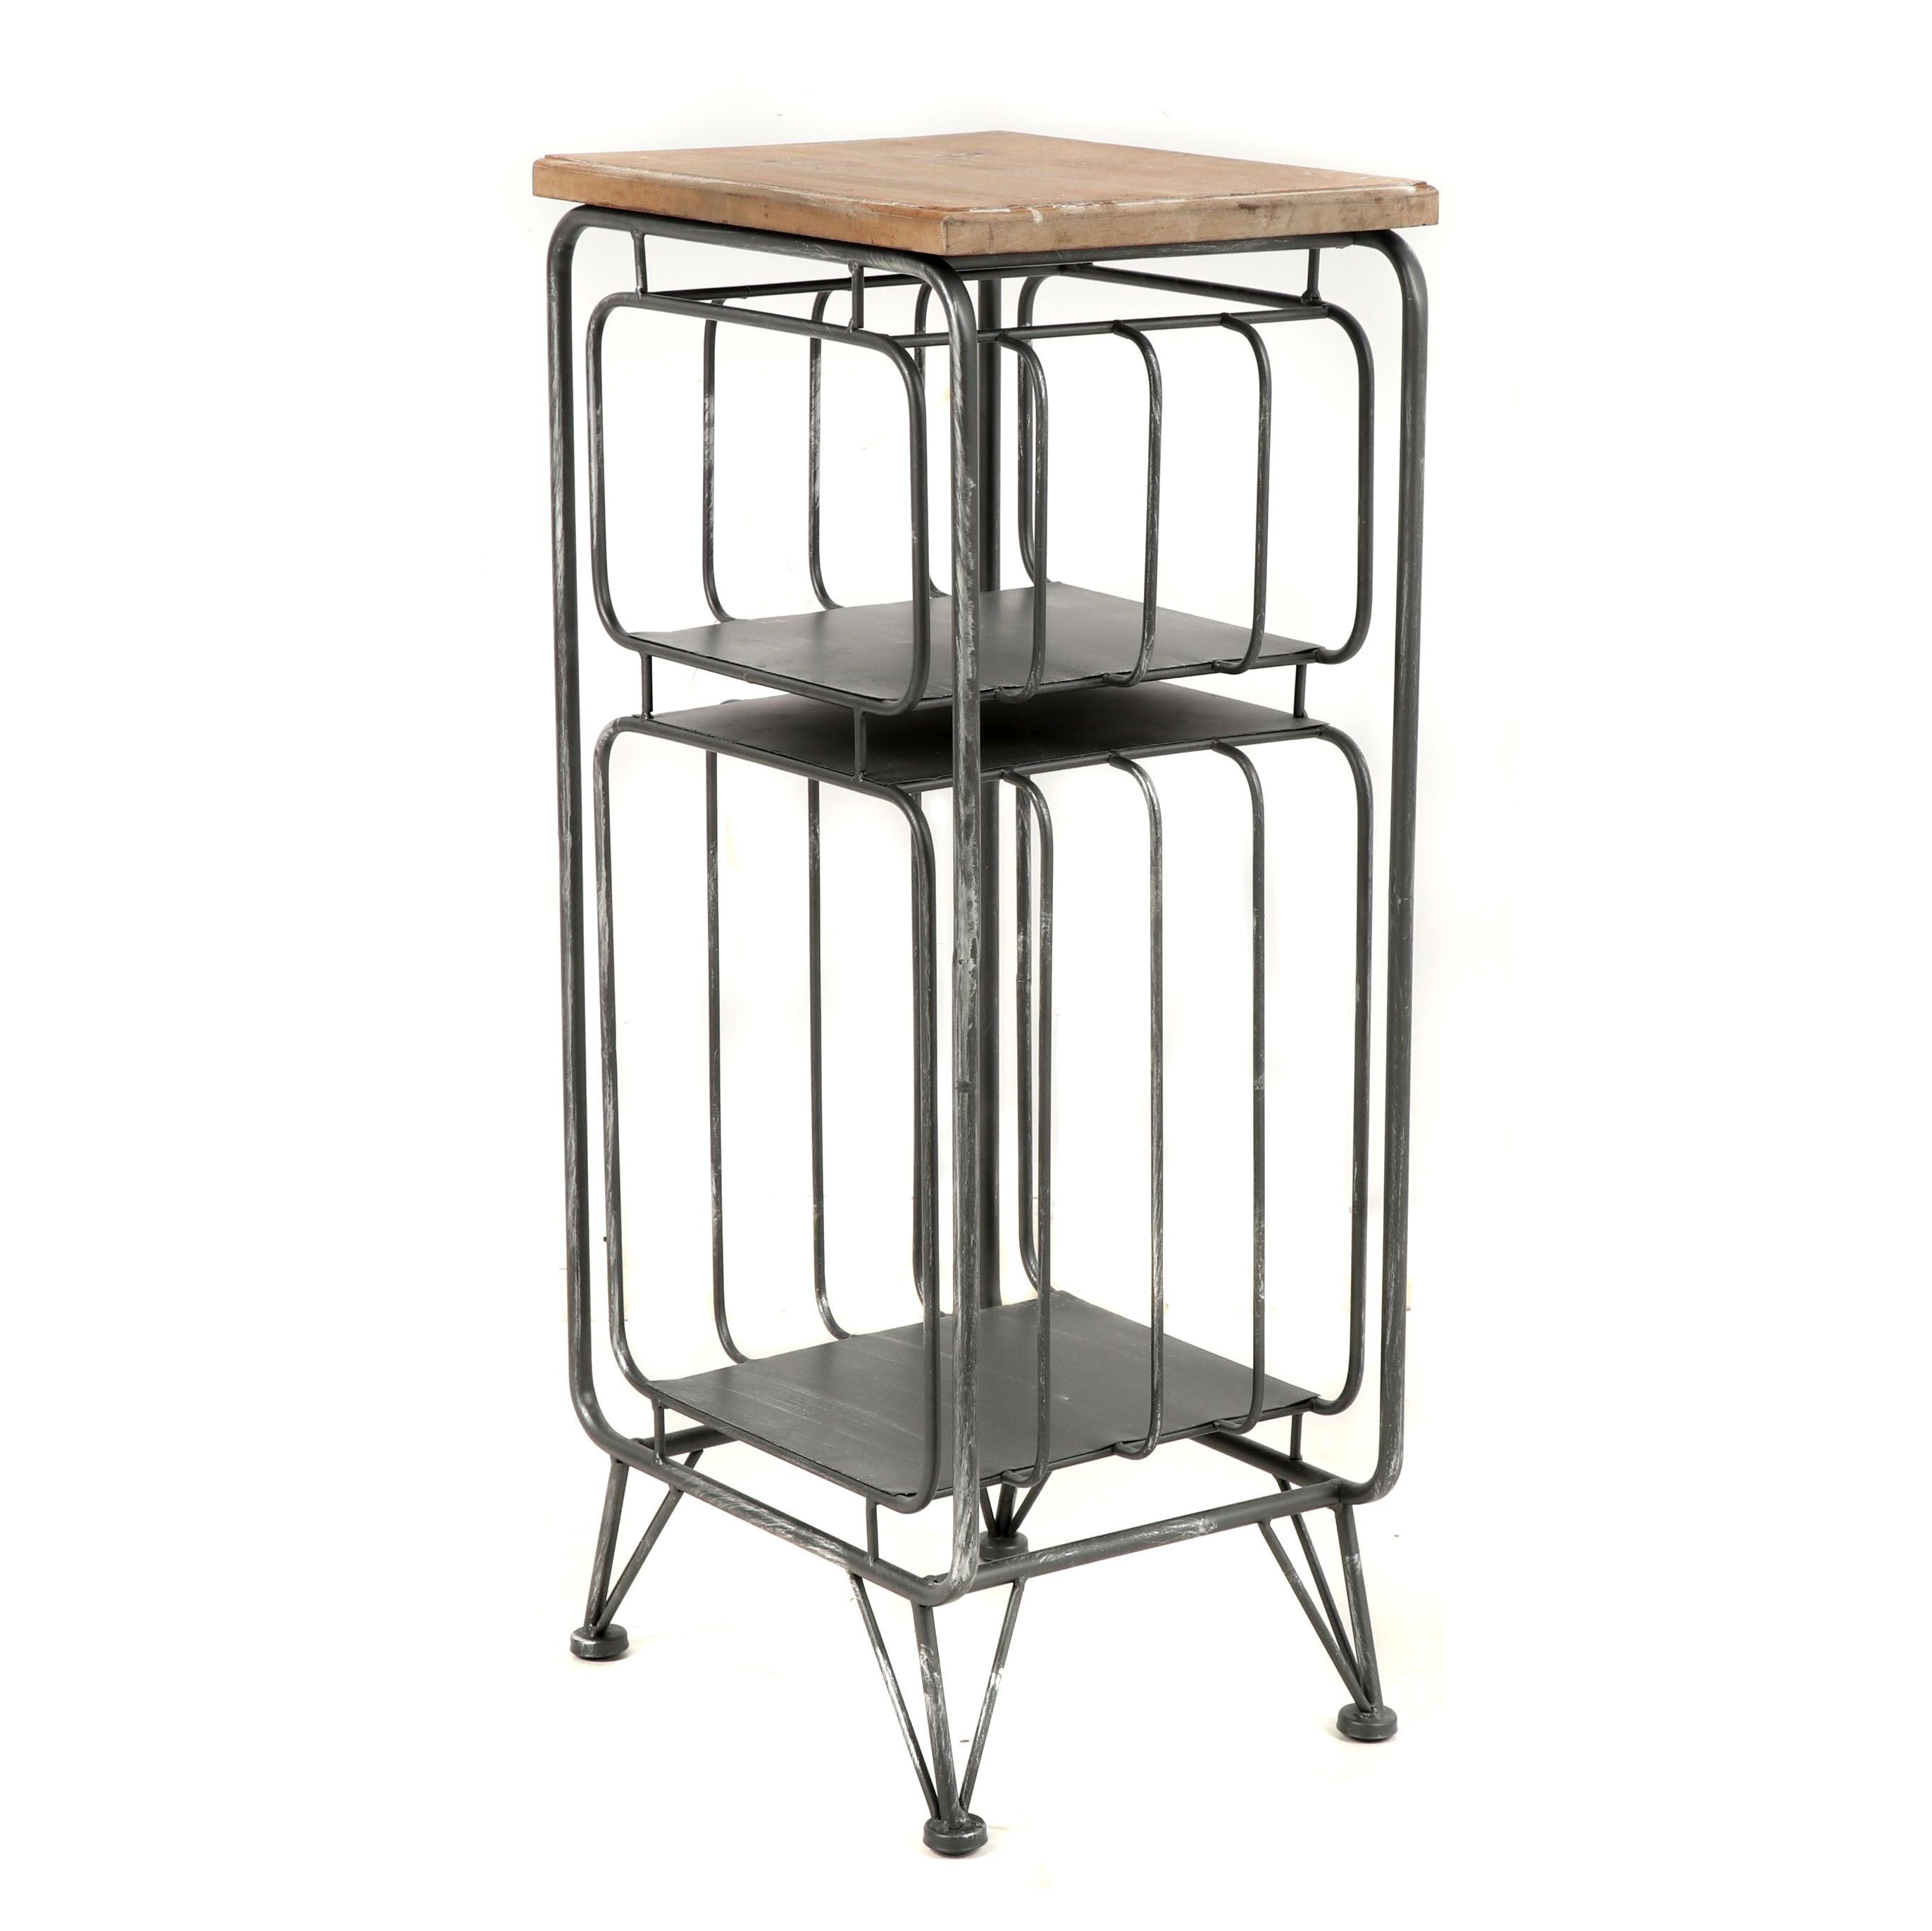 Metal and Wood Accent Table with Rack